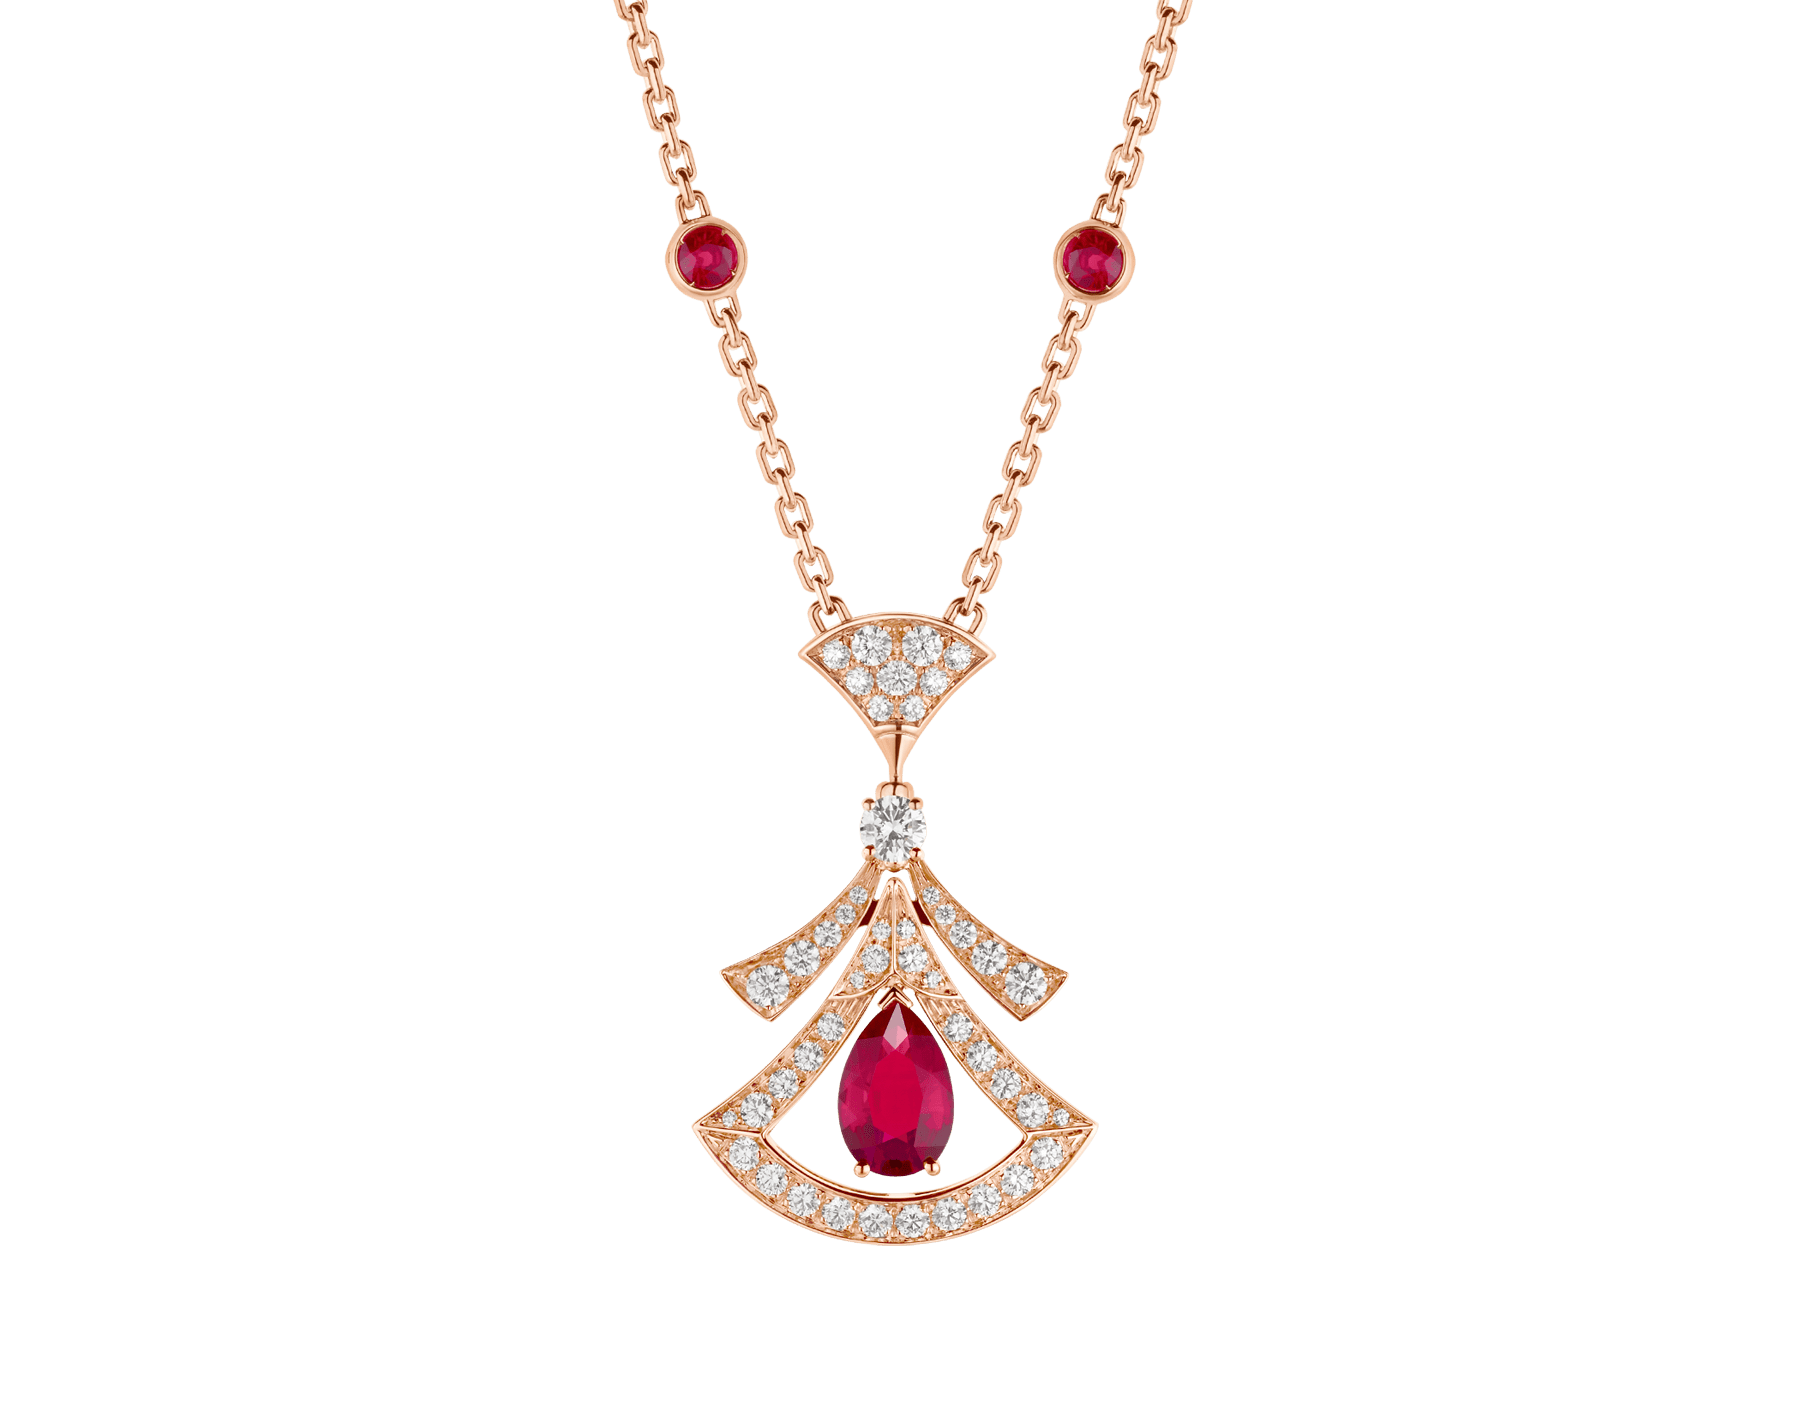 DIVAS' DREAM 18 kt rose gold openwork necklace set with a pear-shaped ruby, round brilliant-cut rubies, a round brilliant-cut diamond and pavé diamonds. 356953 image 1